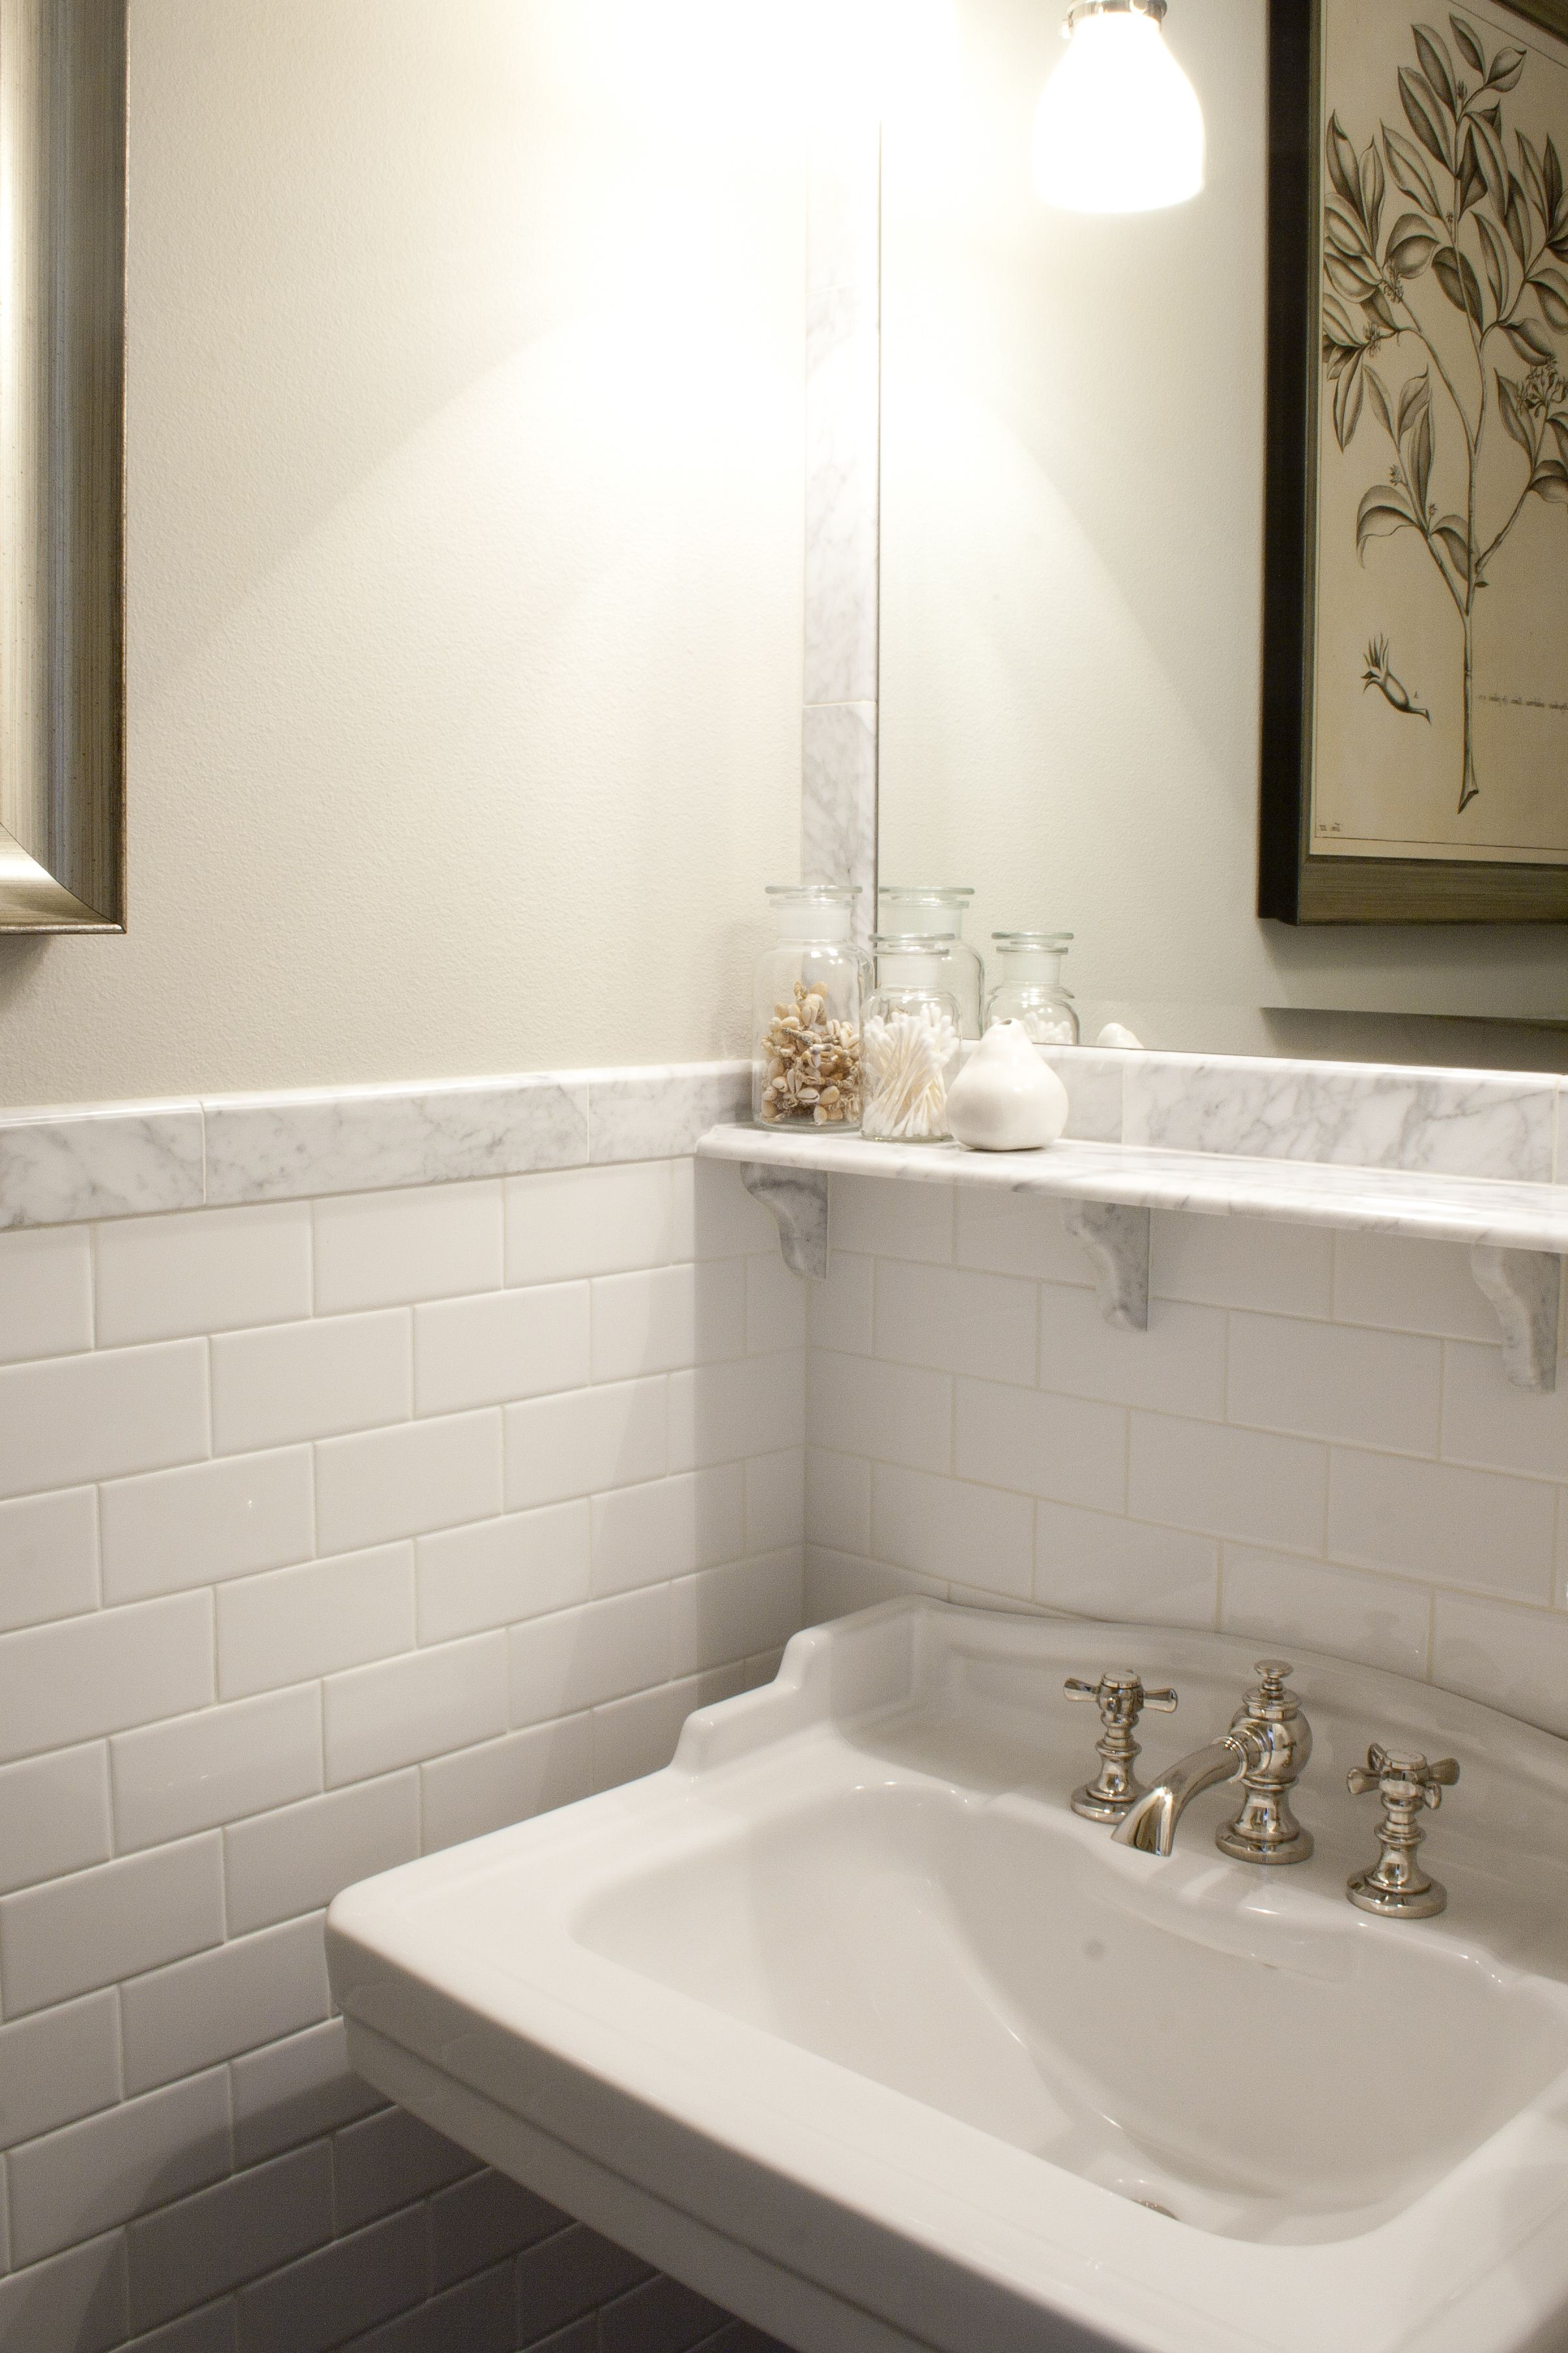 Pin By Calley Snow On Christmas In 2020 White Subway Tile